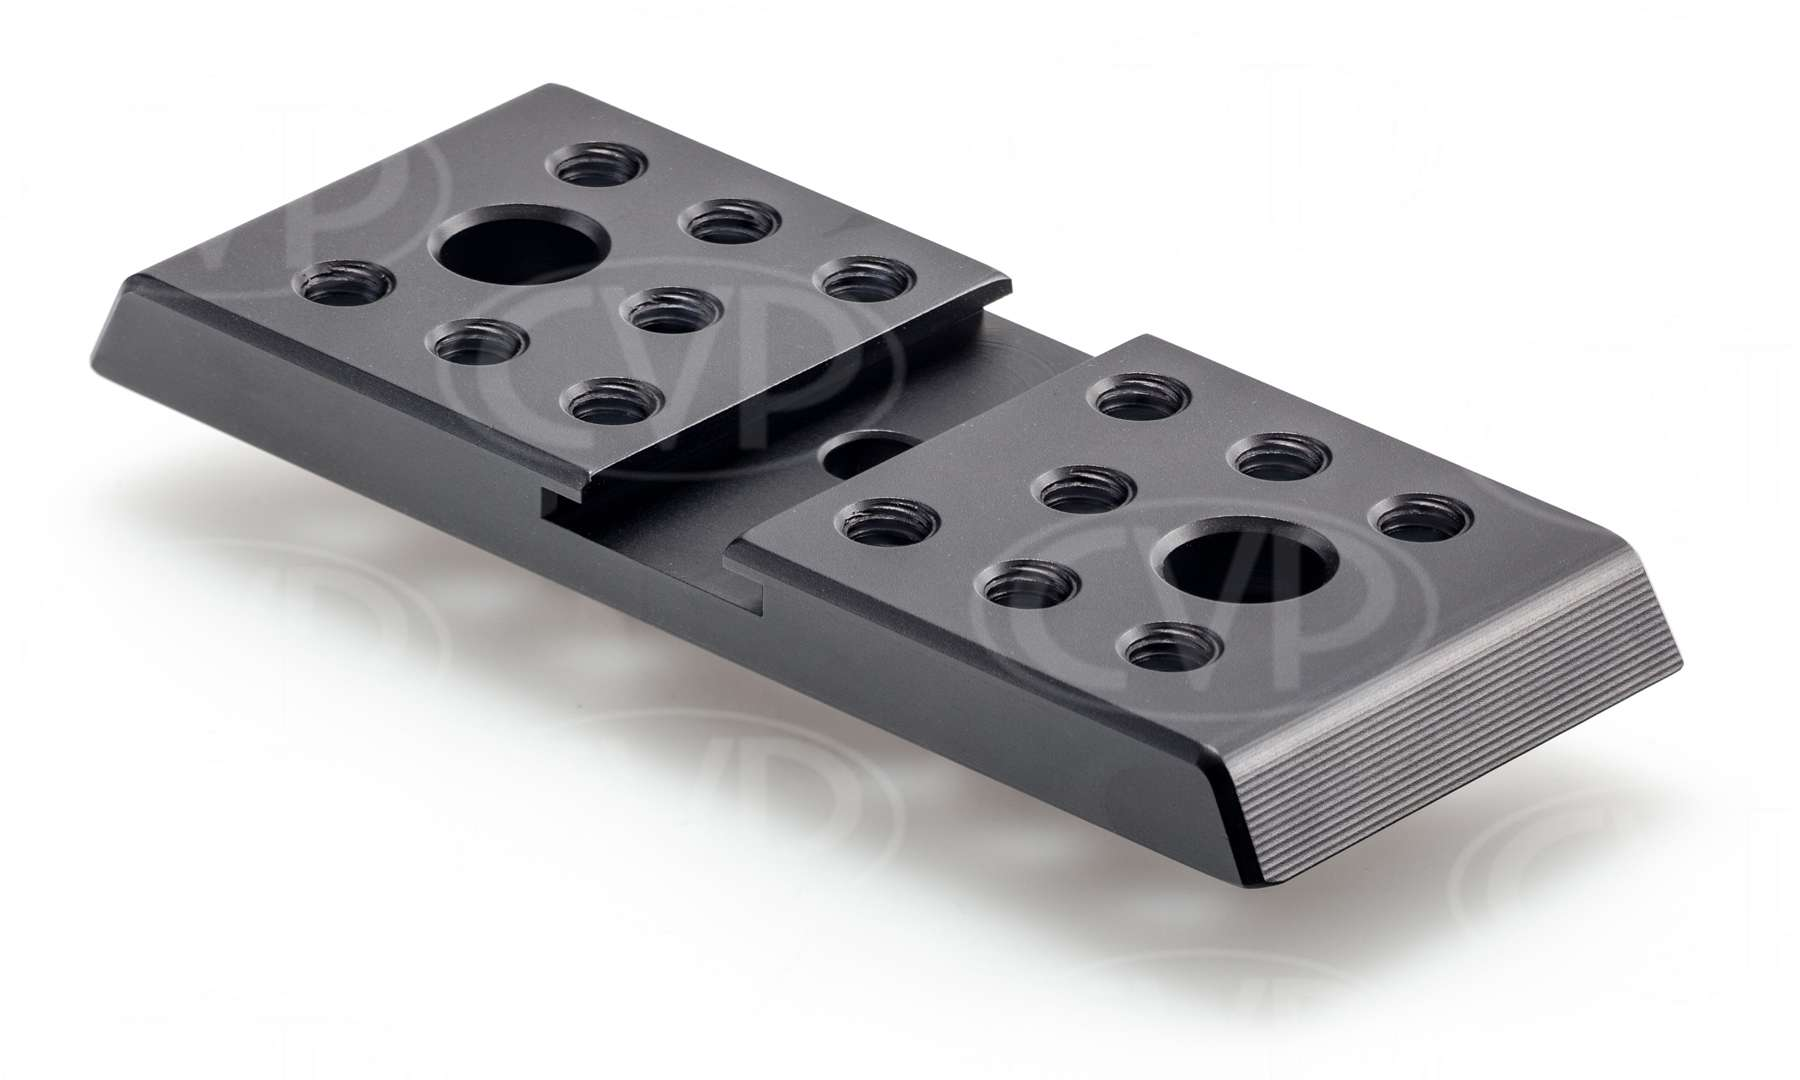 Redrock Micro ultraPlate Top Plate for the Blackmagic Design Cinema